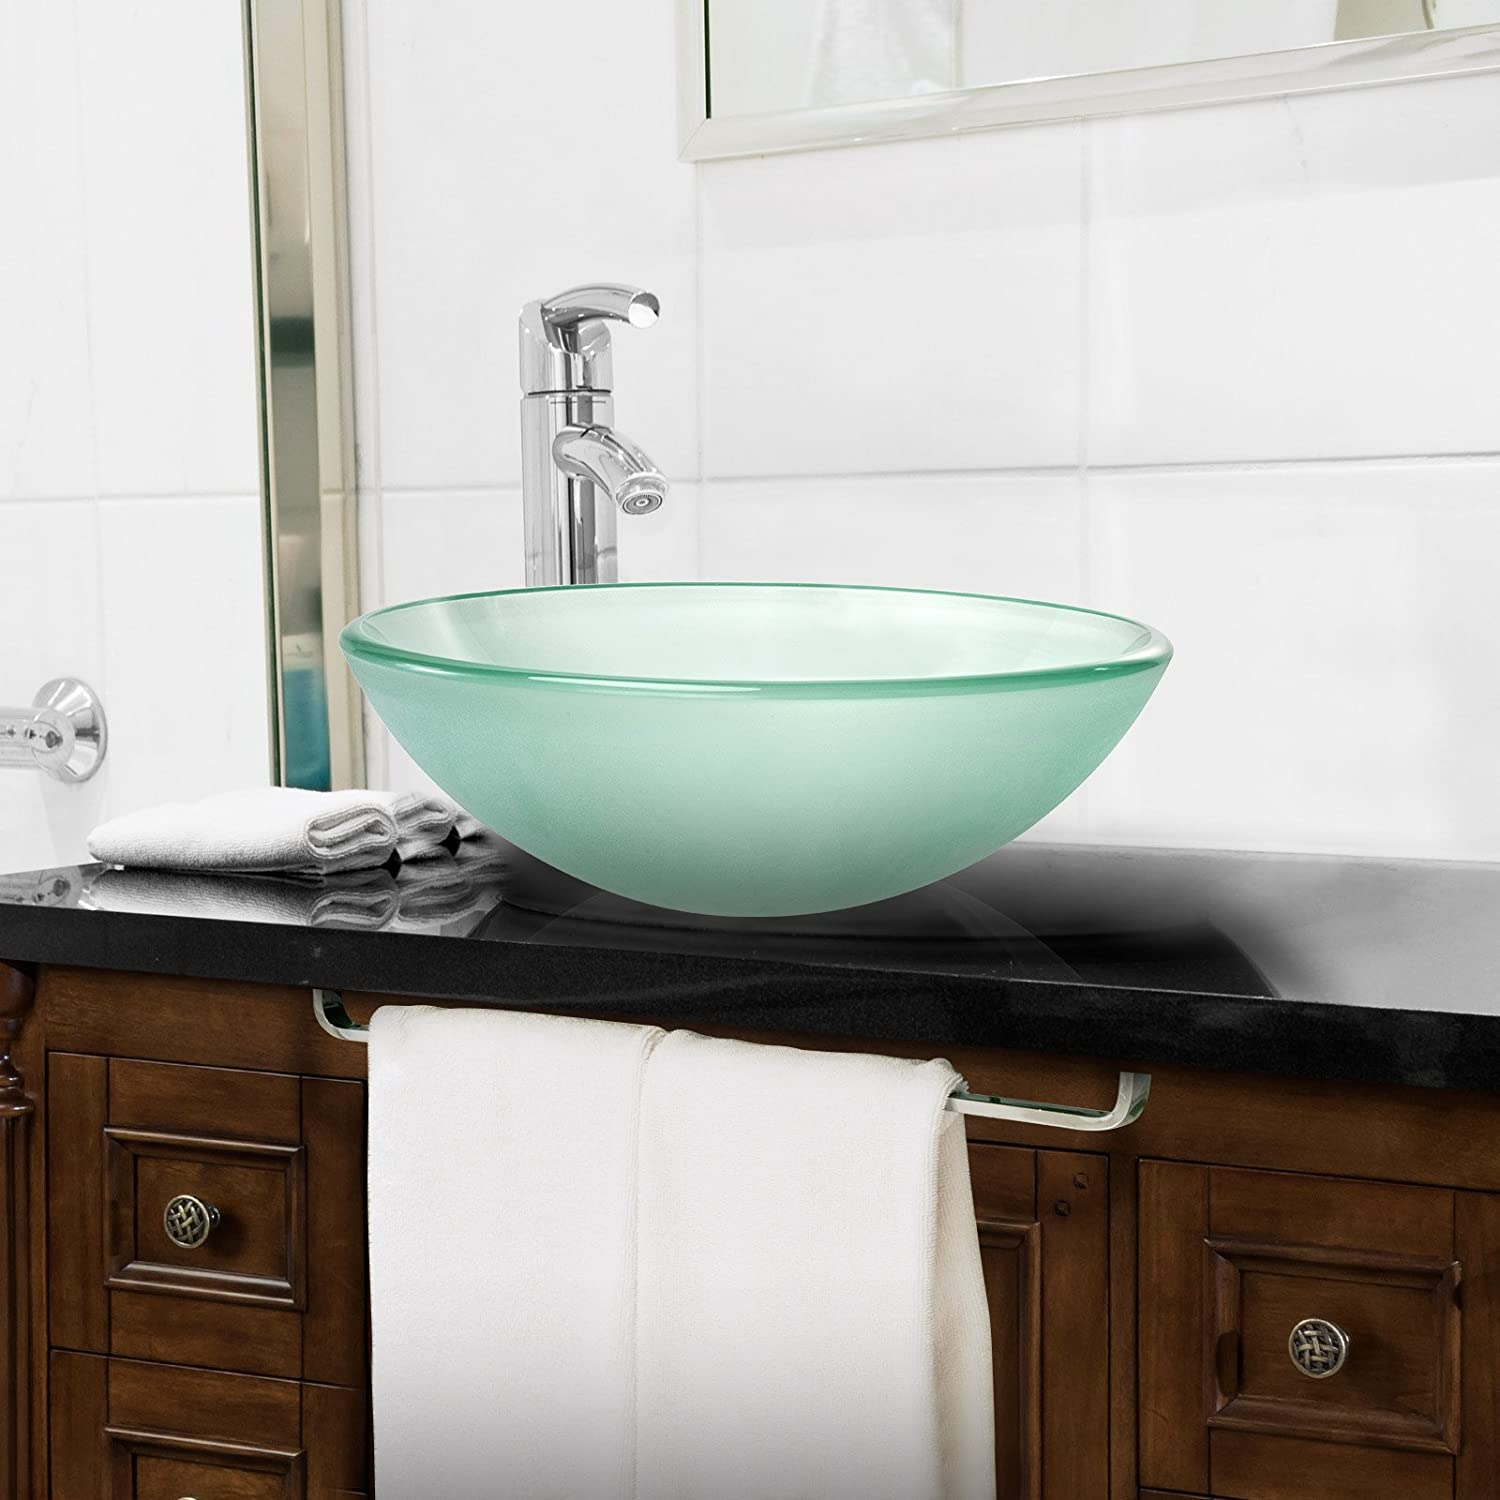 Bathroom vanity bowls - Miligor Modern Glass Vessel Sink Above Counter Bathroom Vanity Basin Bowl Round Frosted Amazon Com